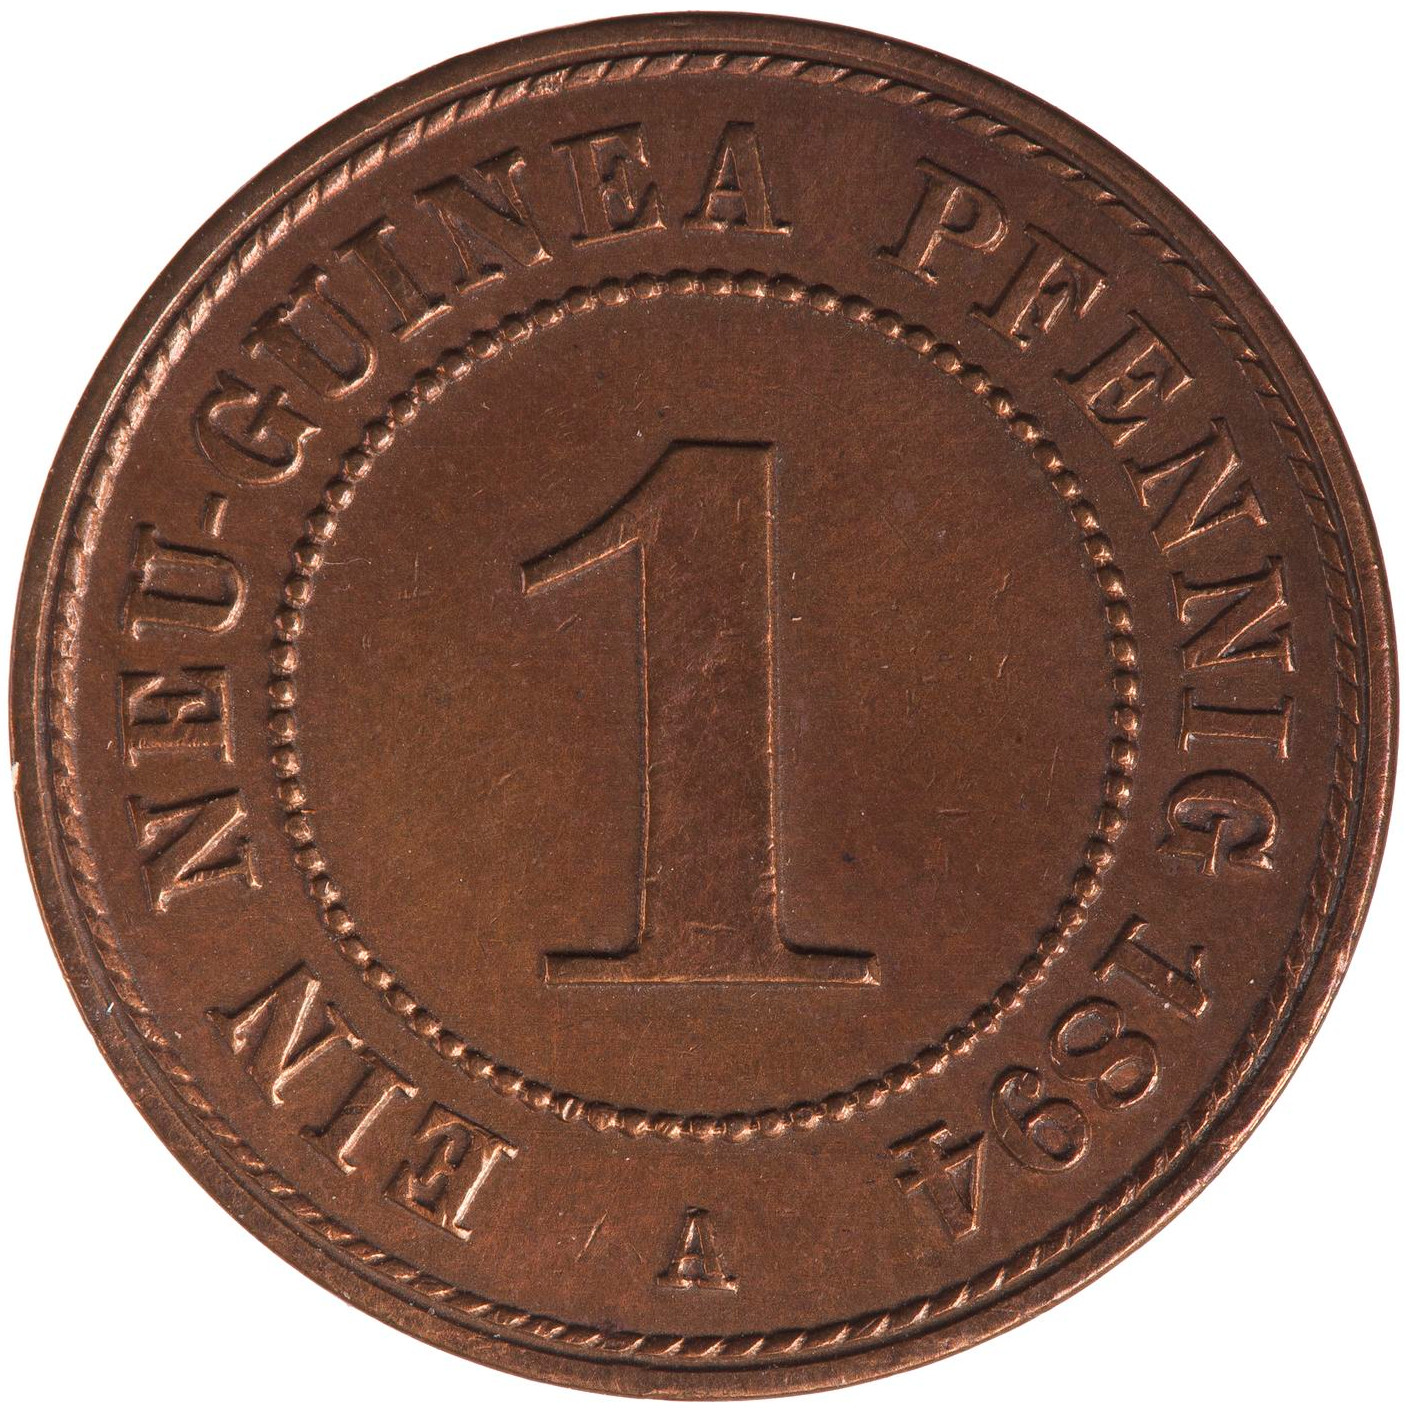 One Pfennig: Photo Coin - 1 Pfennig, German New Guinea (Papua New Guinea), 1894